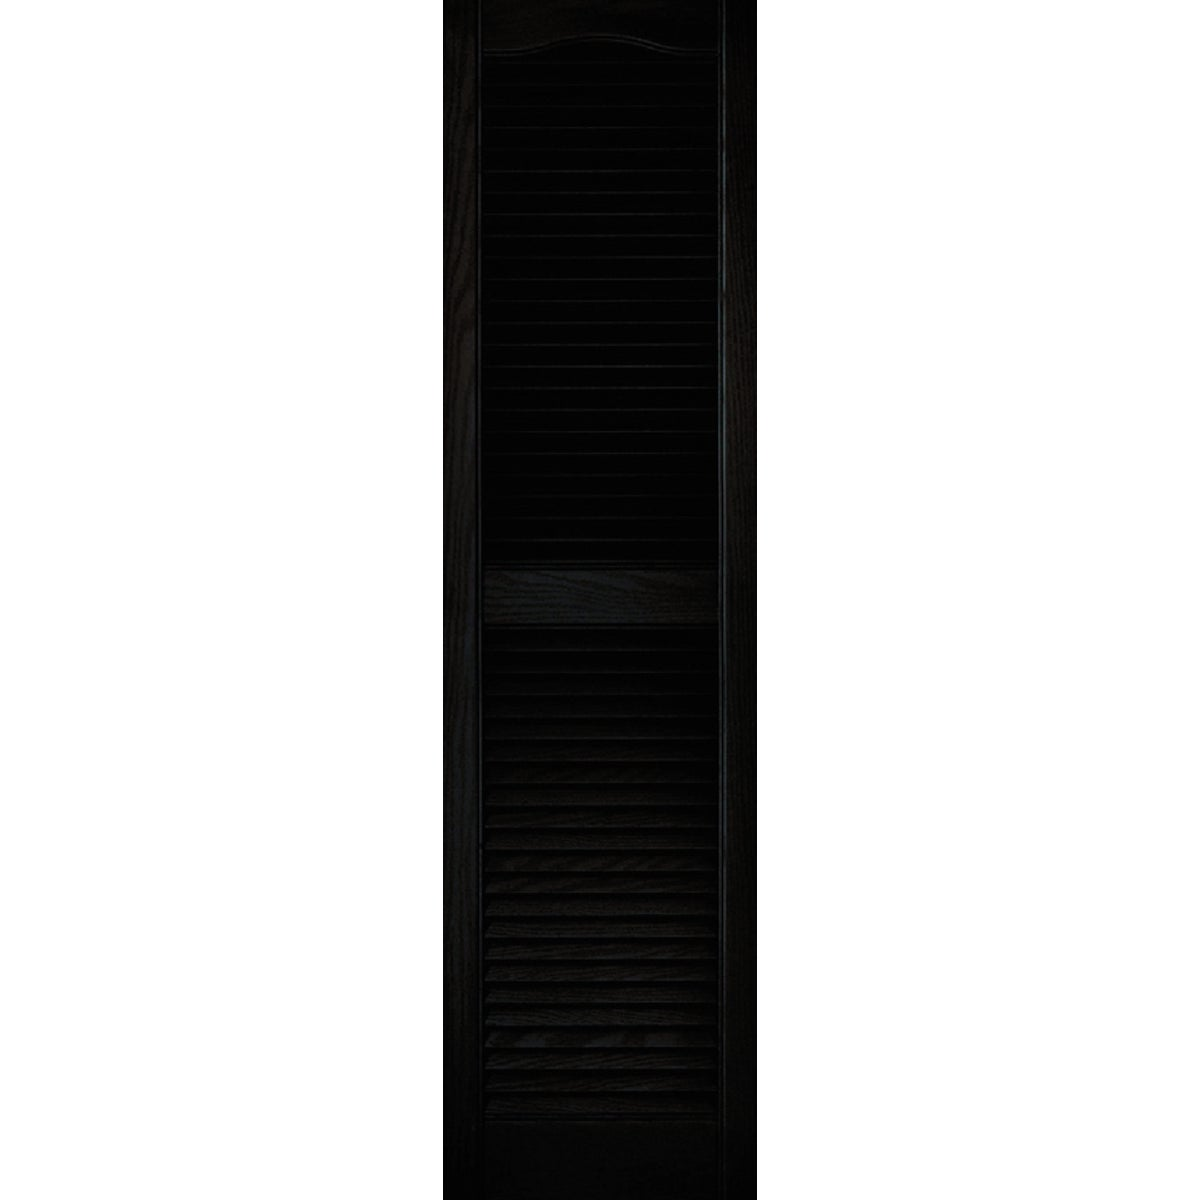 15X55 BLK LOUVER SHUTTER - 020140055002 by The Tapco Group